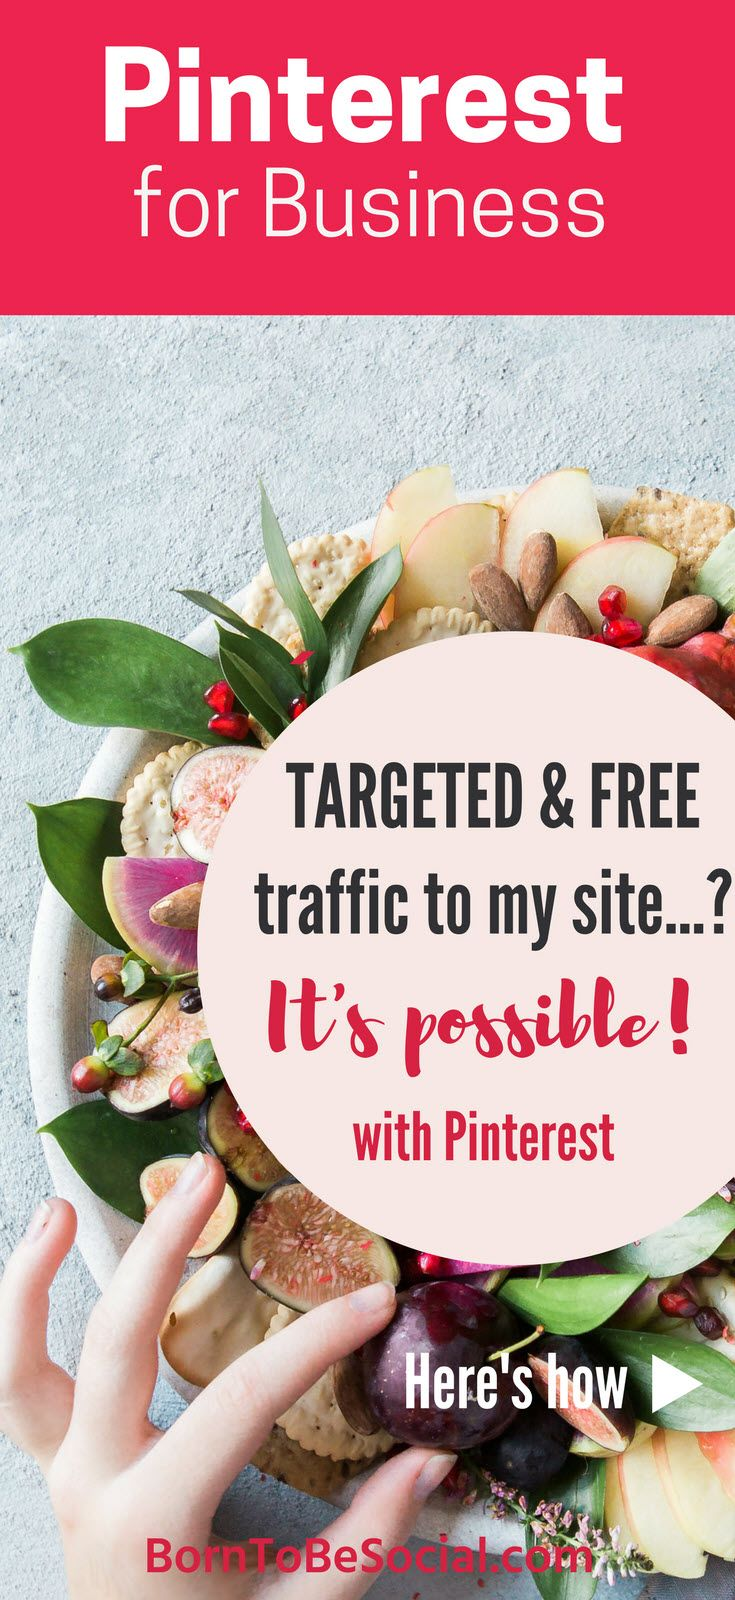 Learn how to build a PERFECT Pinterest page that attracts YOUR DREAM CLIENTS... be helpful | be visual | inspire! Three essential ingredients to steer a targeted audience in your direction. Get discovered on Pinterest by your perfect clients. Pinterest Strategy Tips for Business. | via @BornToBeSocial – Conversion Focused Pinterest Marketing